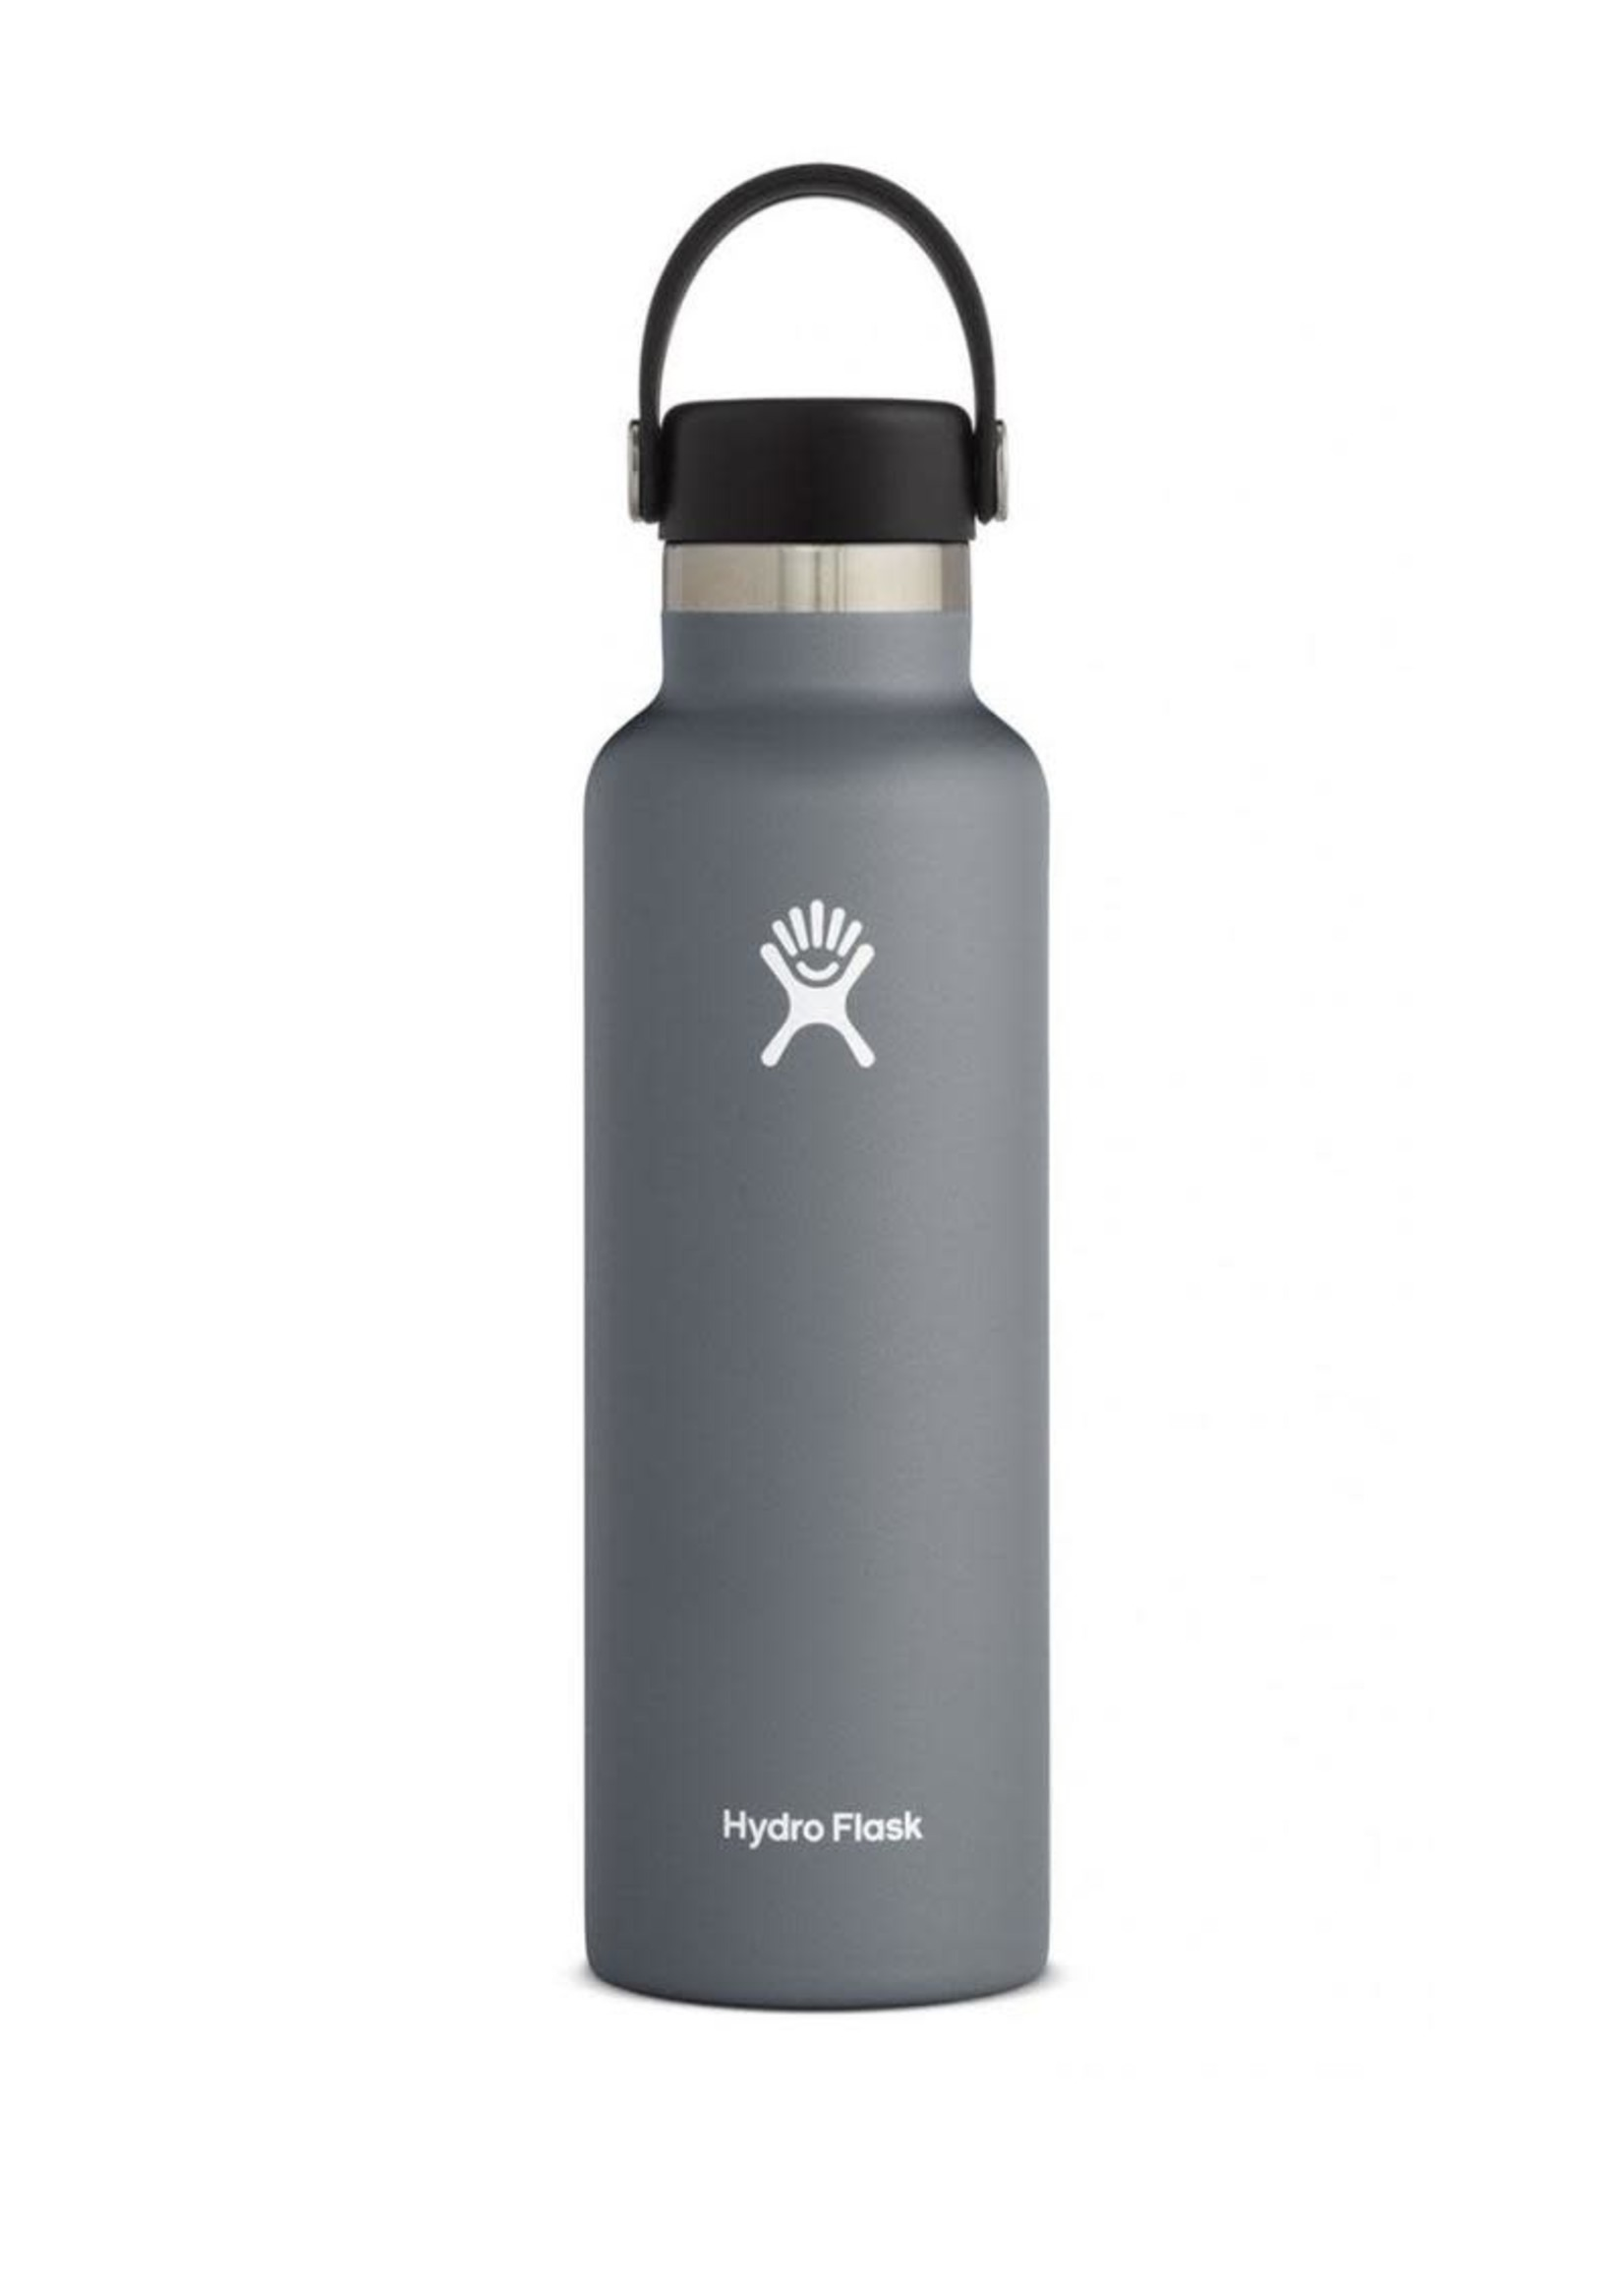 Hydro Flask Hydro Flask, 21 oz Standard Mouth Flex Cap Insulated Stainless Steel Bottle in Stone